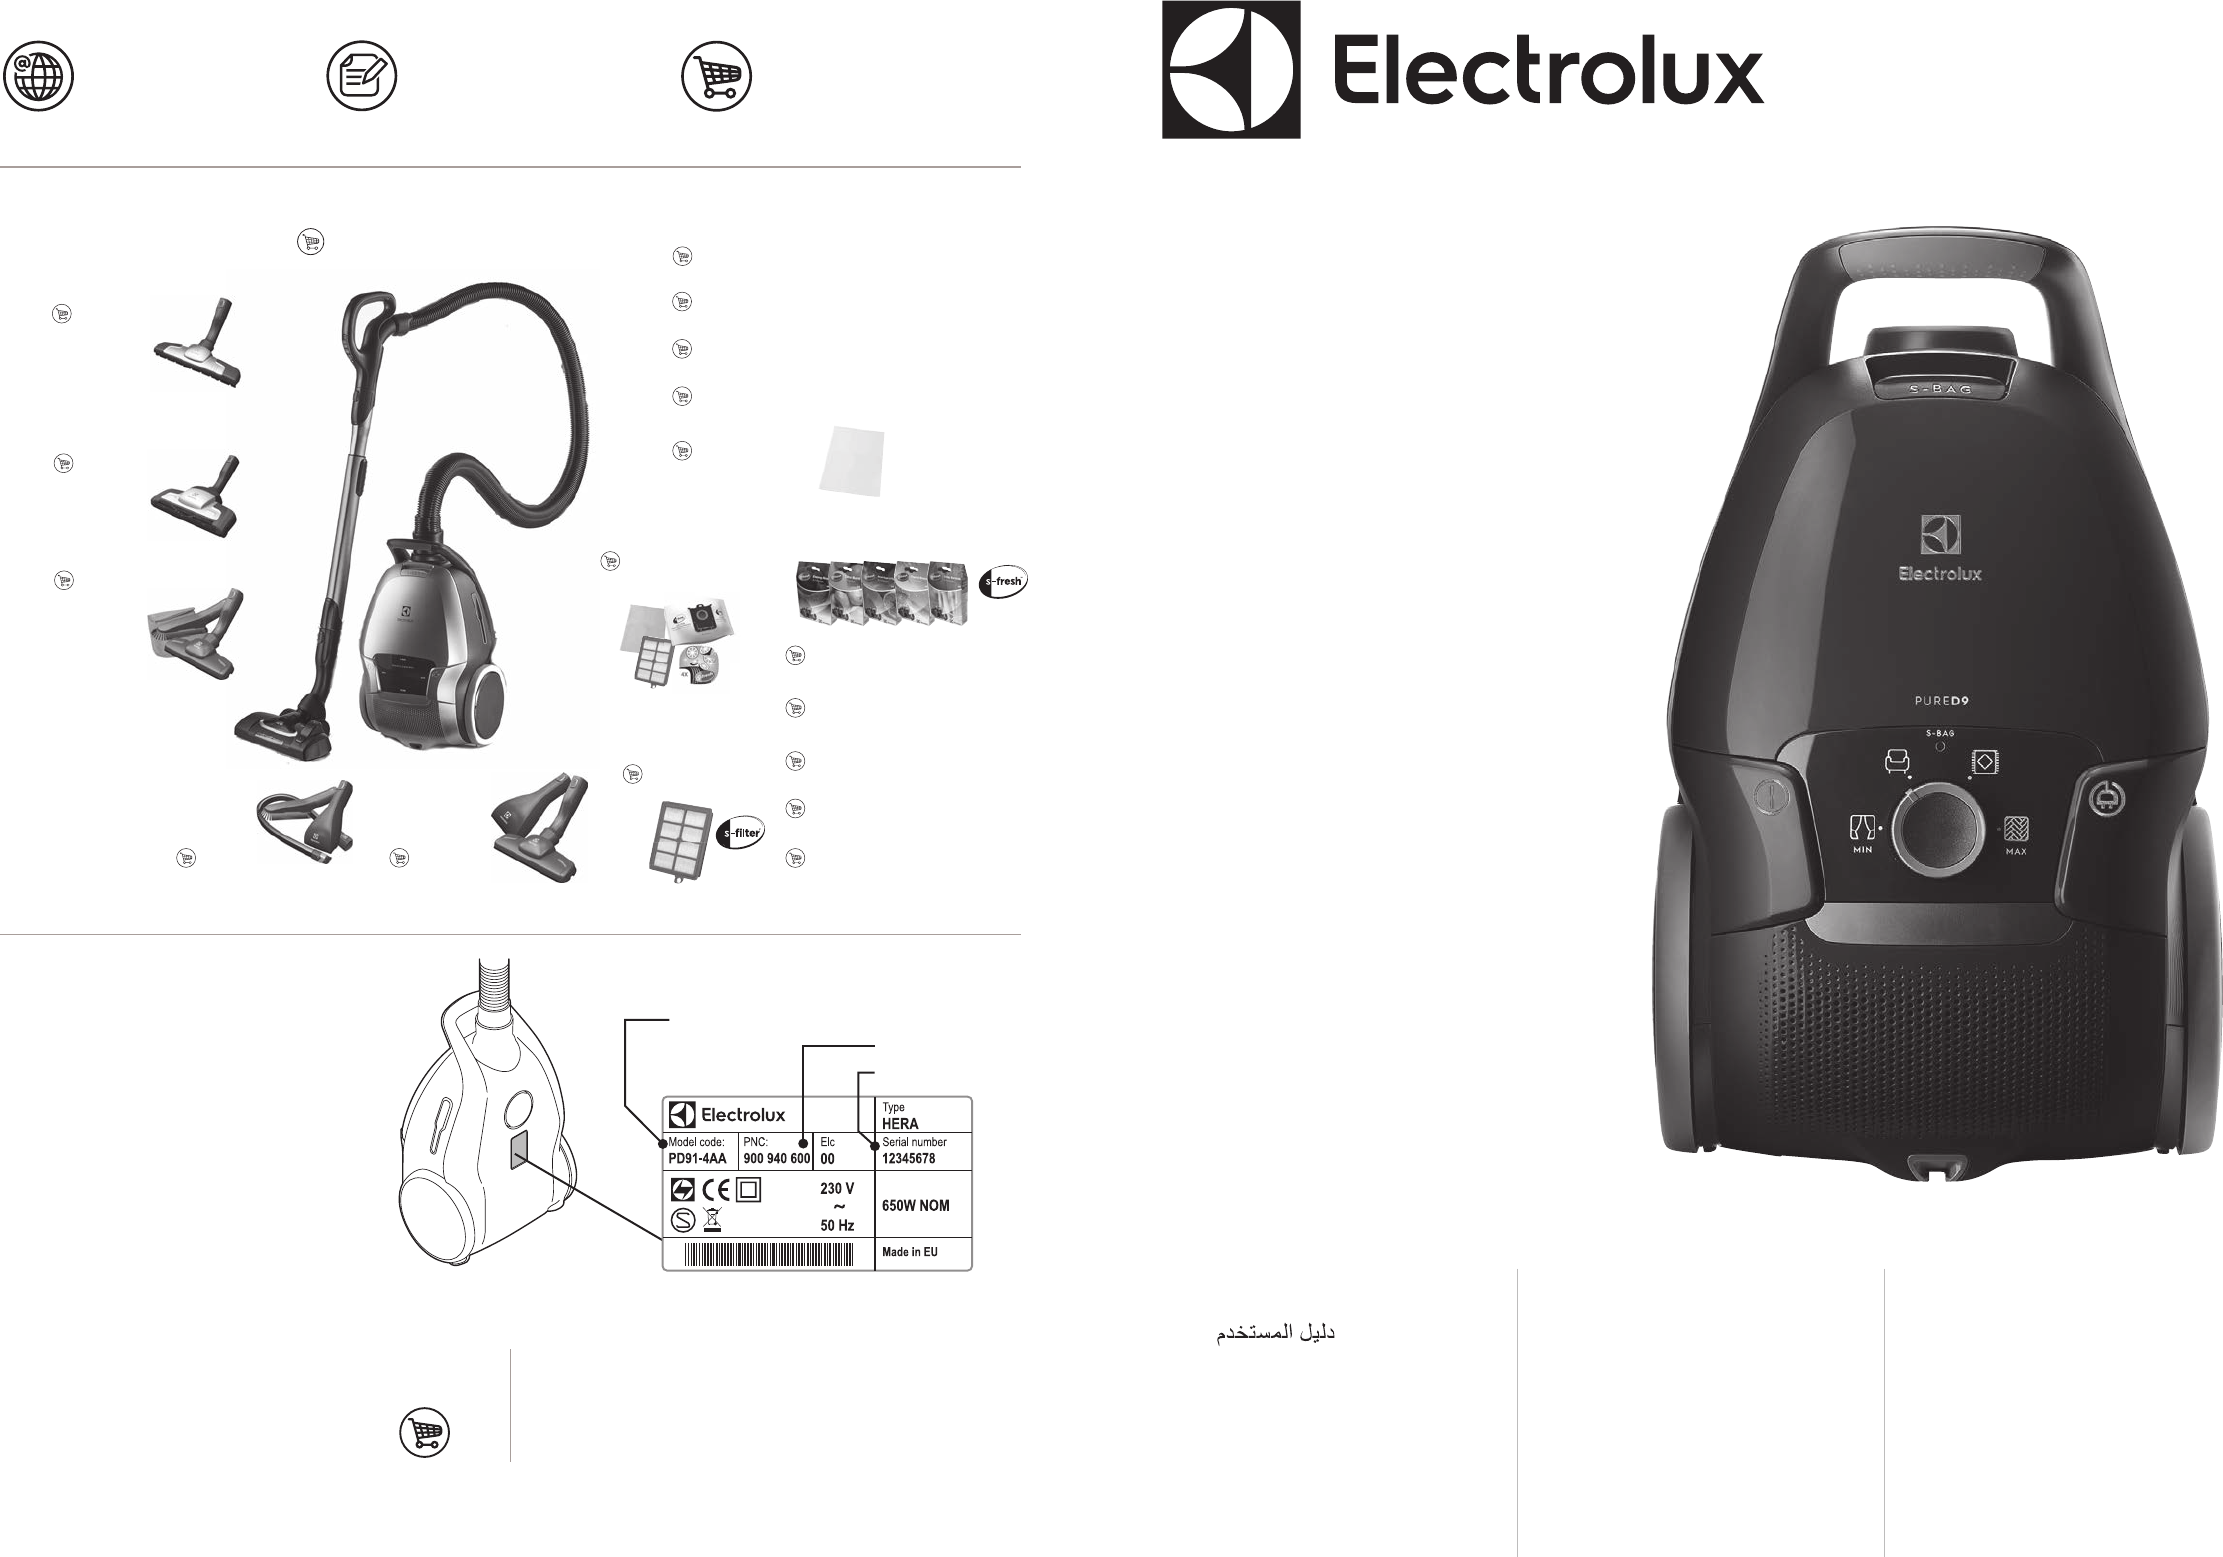 Electrolux PURED9 manual